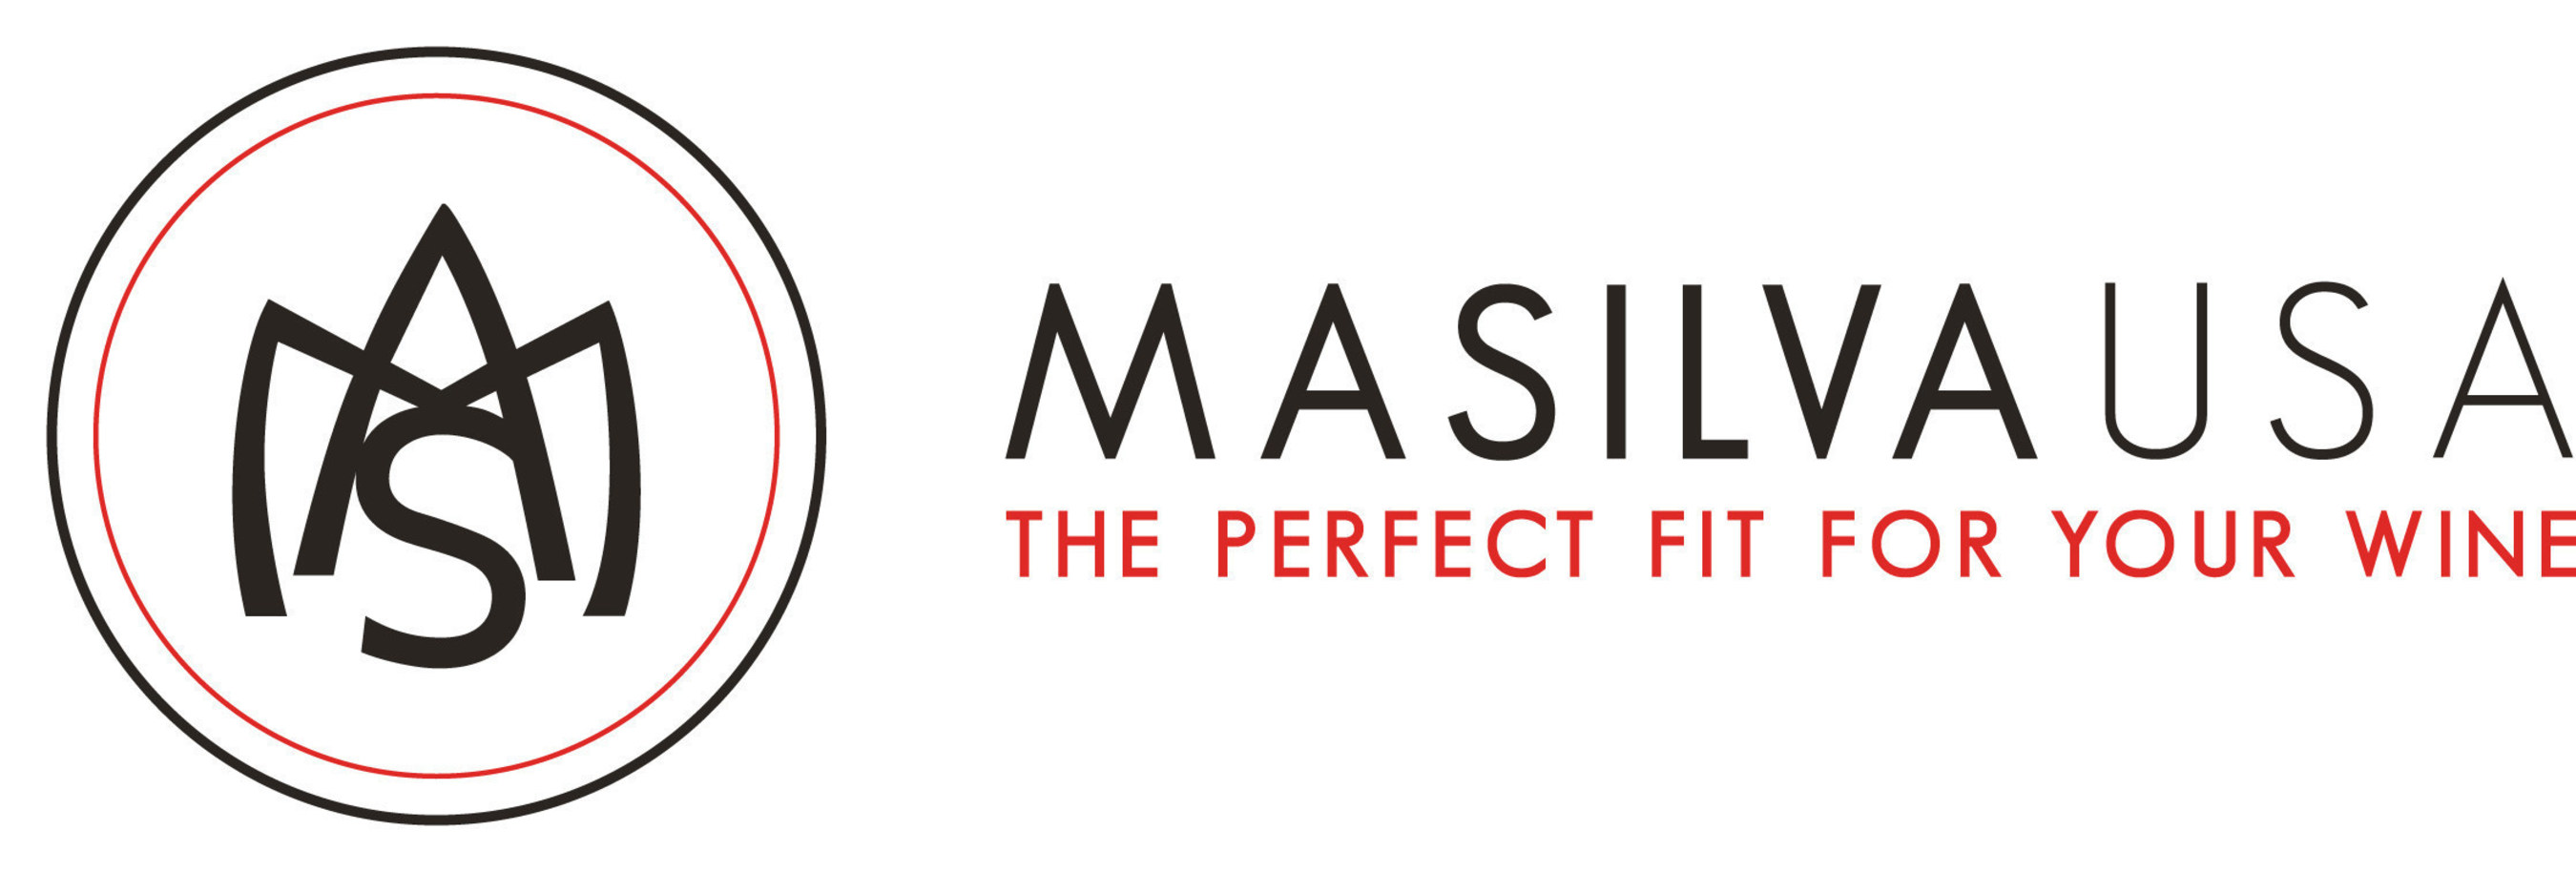 M. A. Silva USA - The Perfect Fit For Your Wine